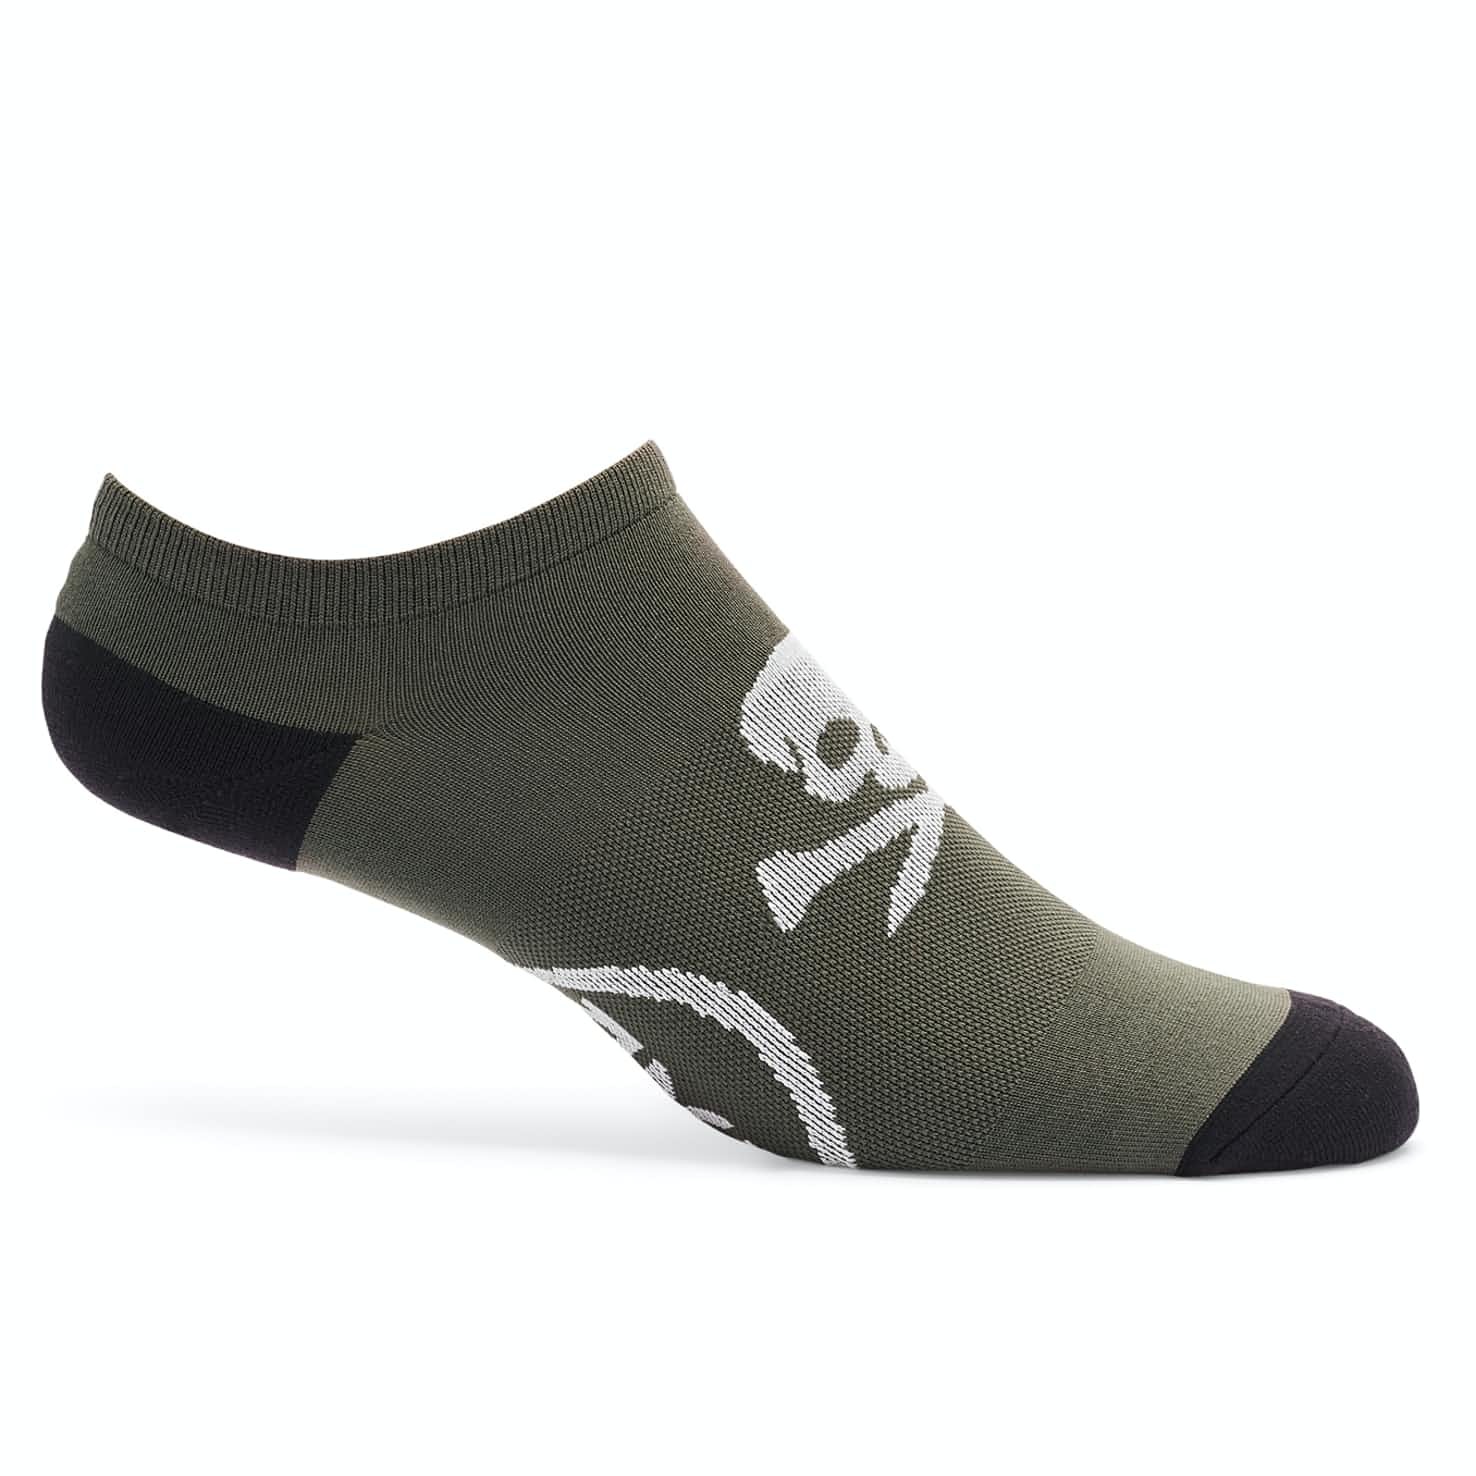 Skull & T's Low Sock Charcoal - AW19